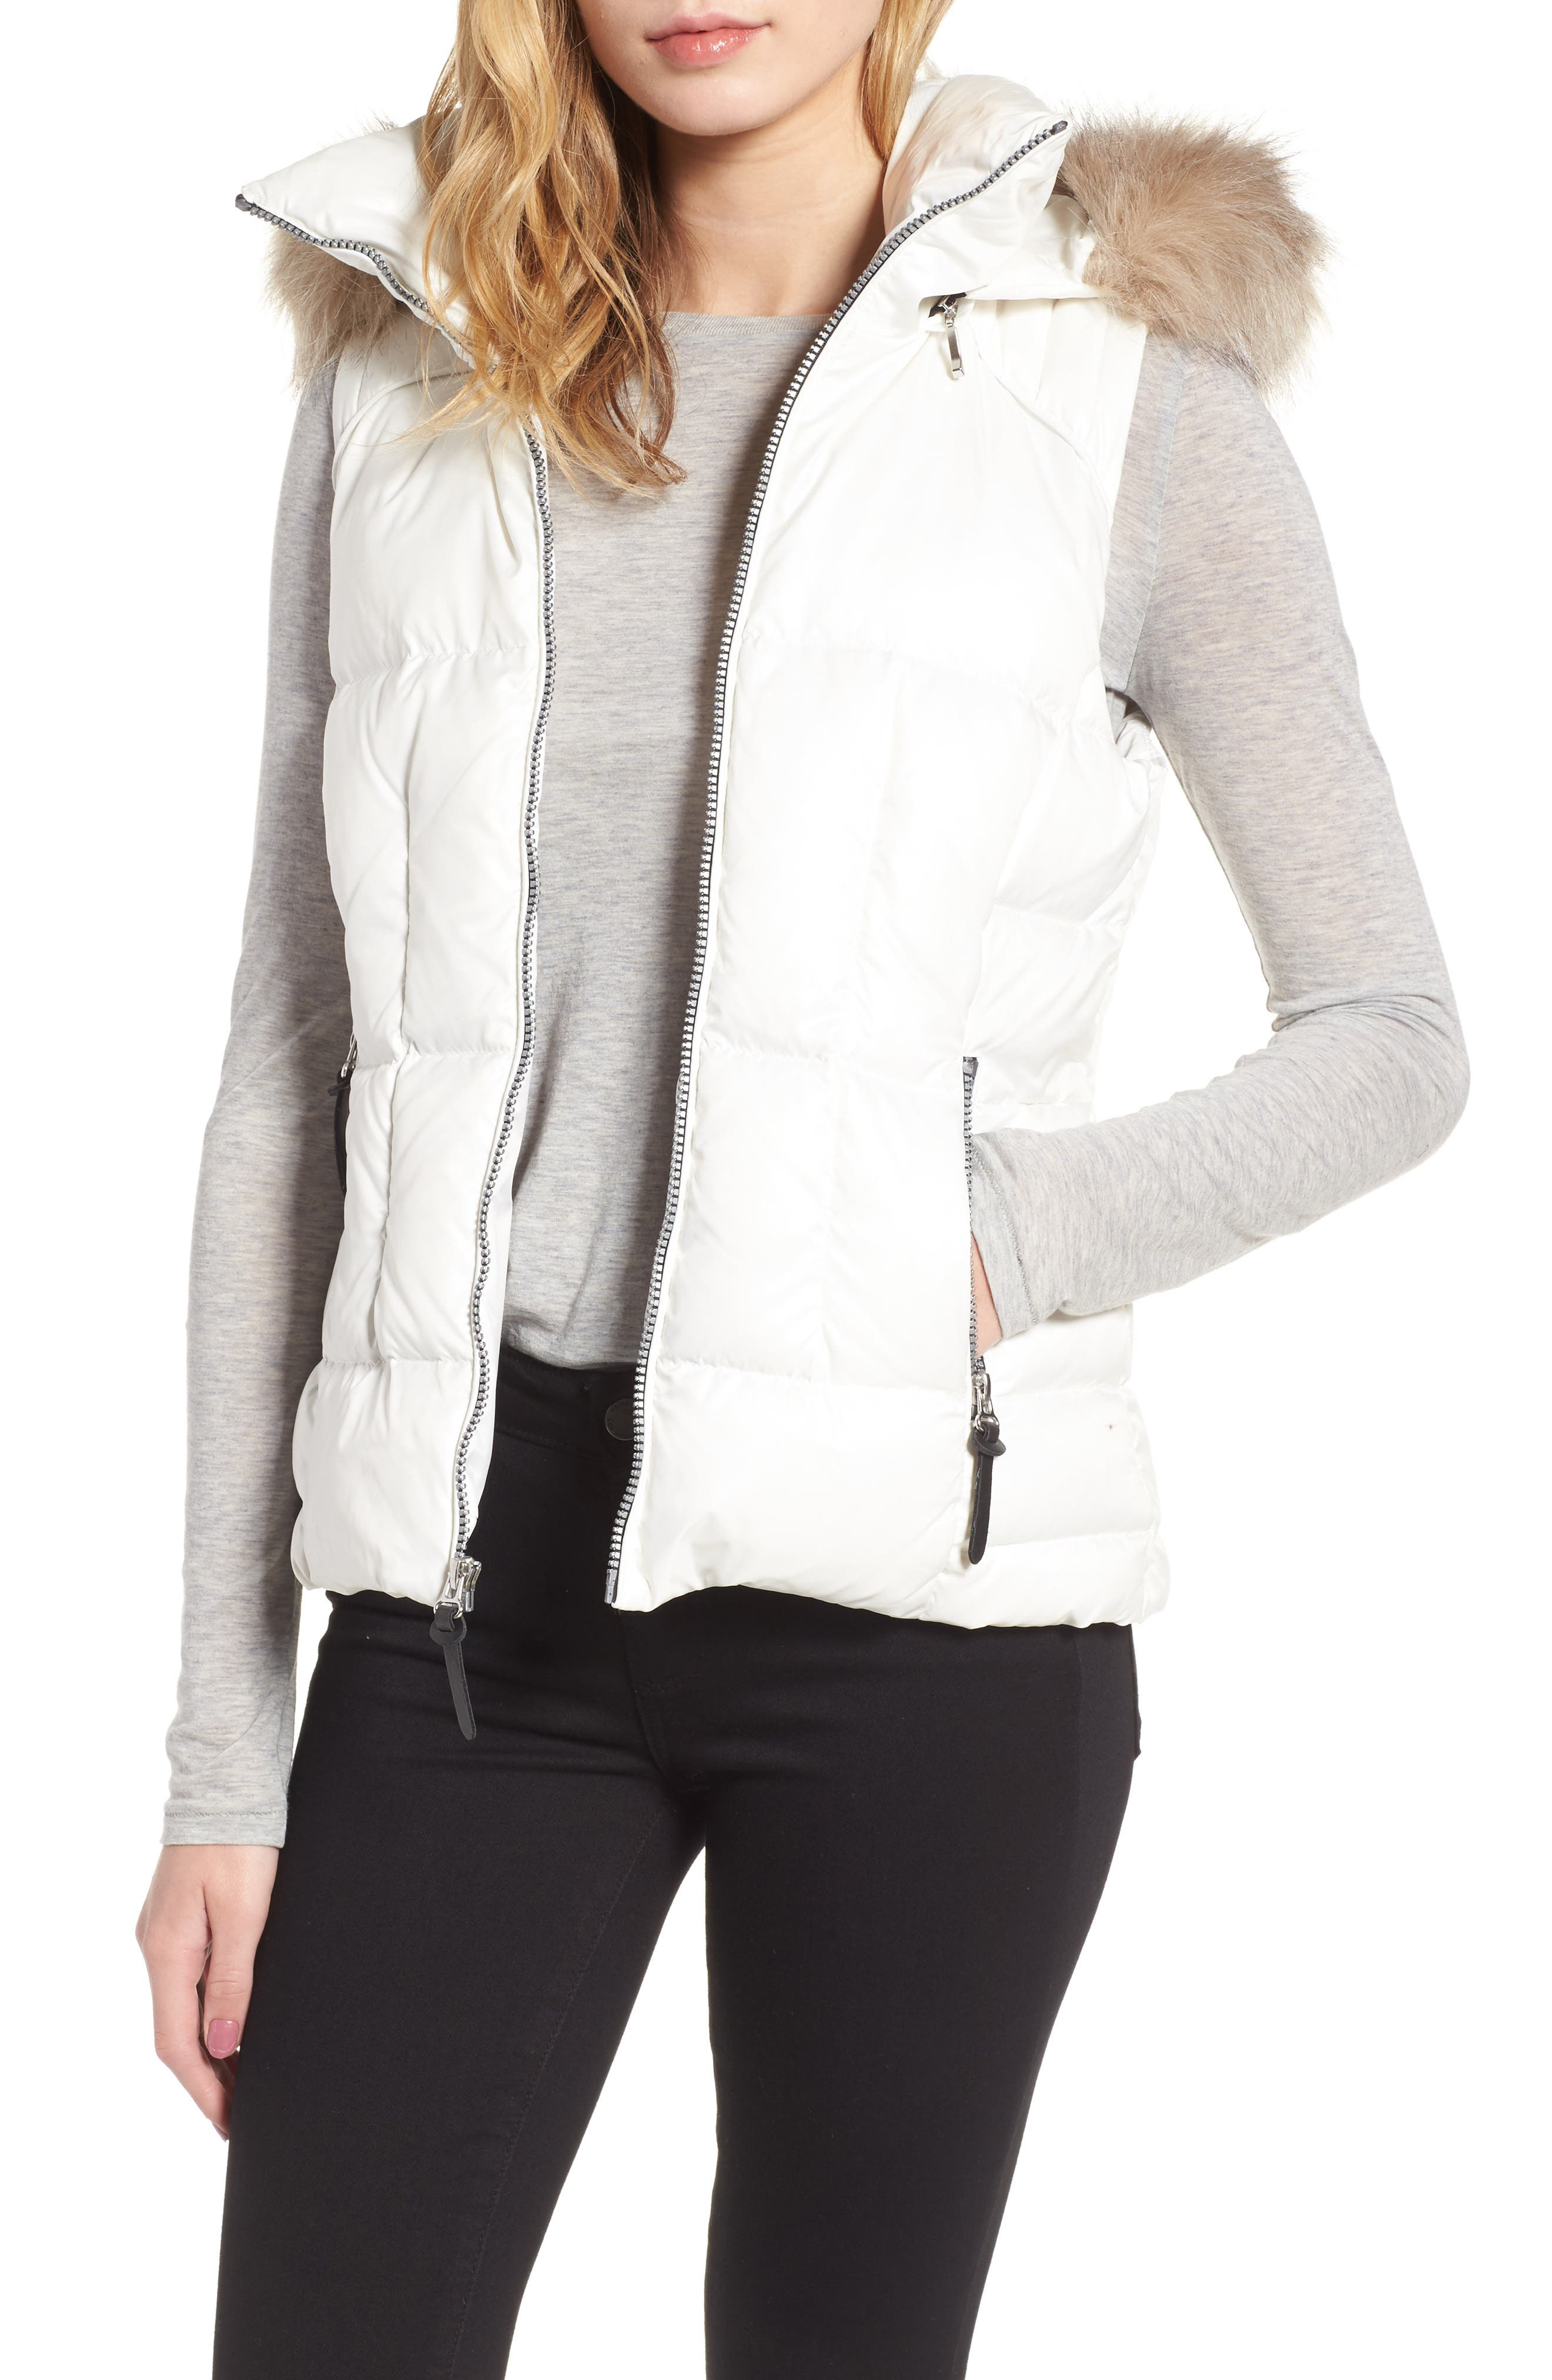 Lanie Puffer Vest with Faux Fur,                         Main,                         color, White